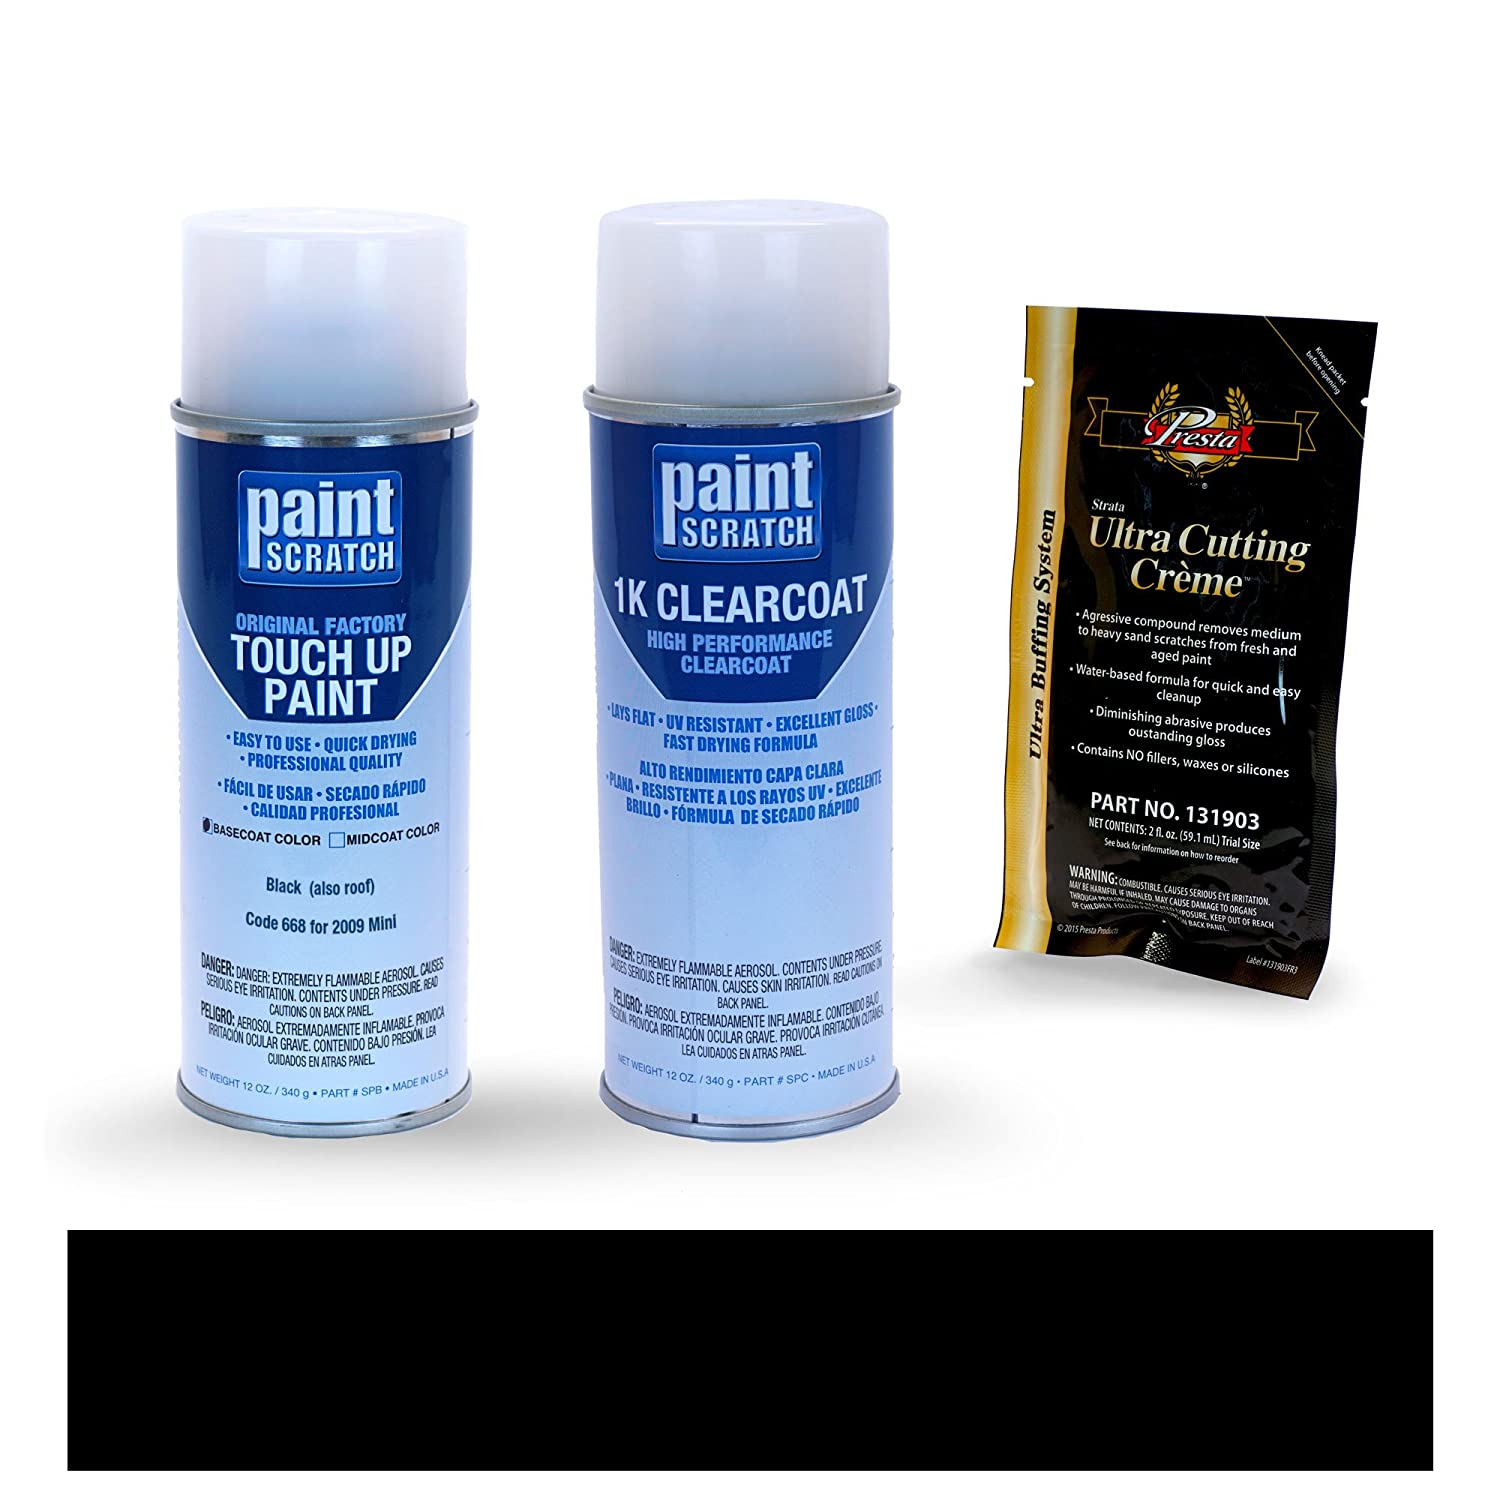 PAINTSCRATCH Black (Also Roof) 668 for 2009 Mini Cooper - Touch Up Paint Spray Can Kit - Original Factory OEM Automotive Paint - Color Match Guaranteed